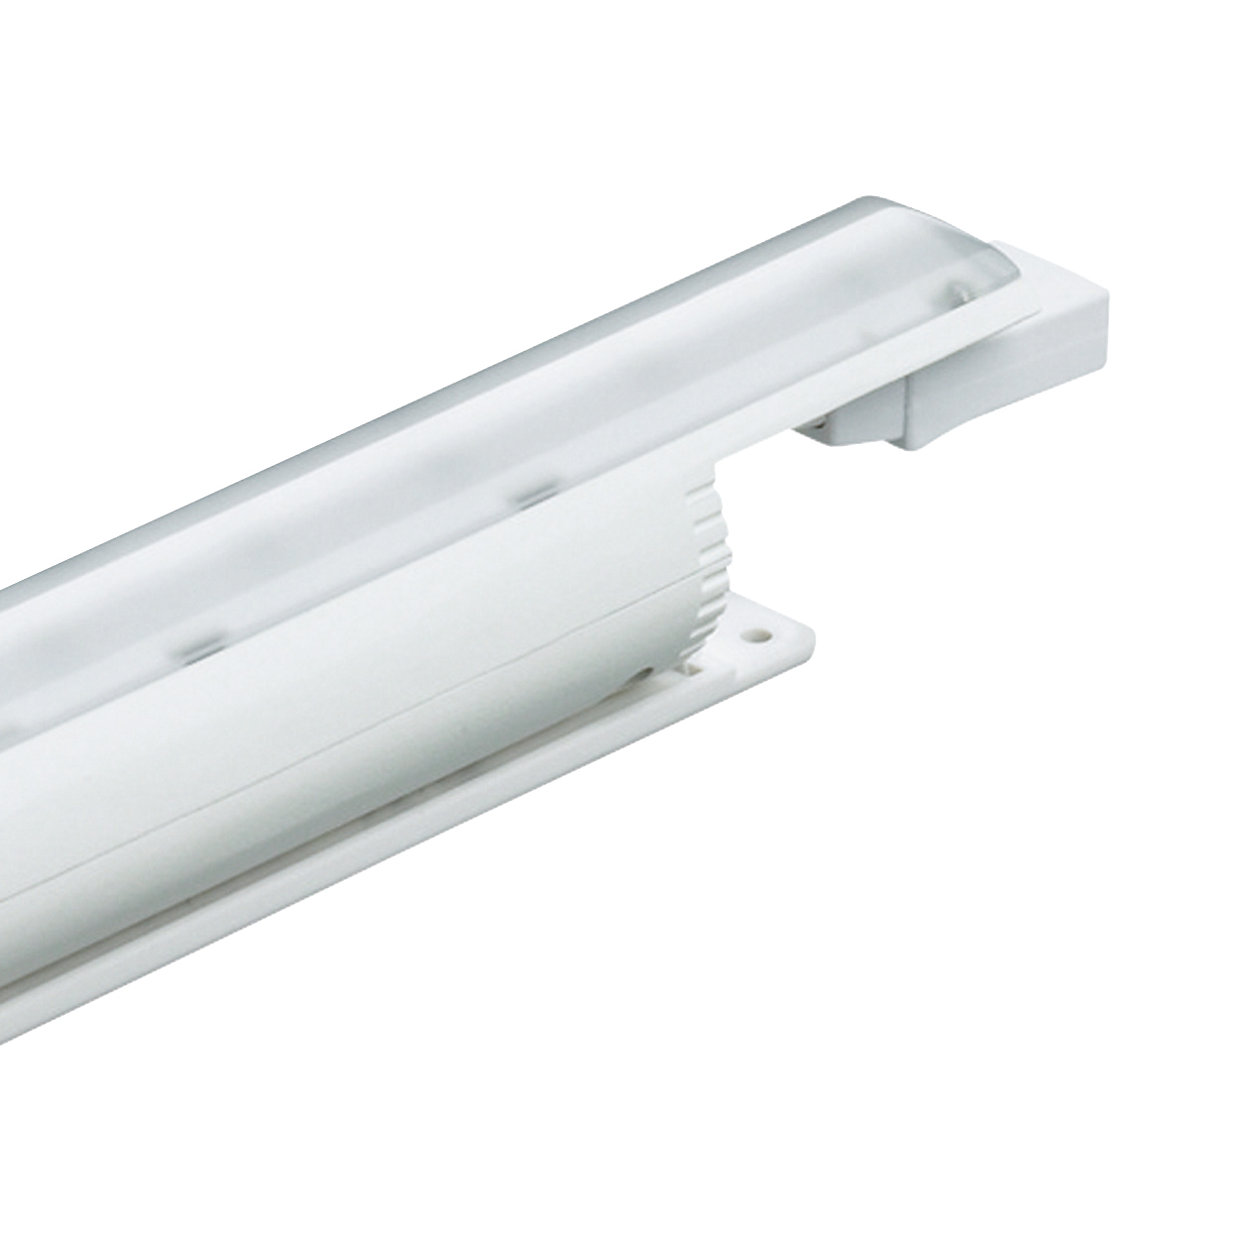 eColor Cove MX Powercore - Premium interior linear LED cove and accent fixture with solid color light